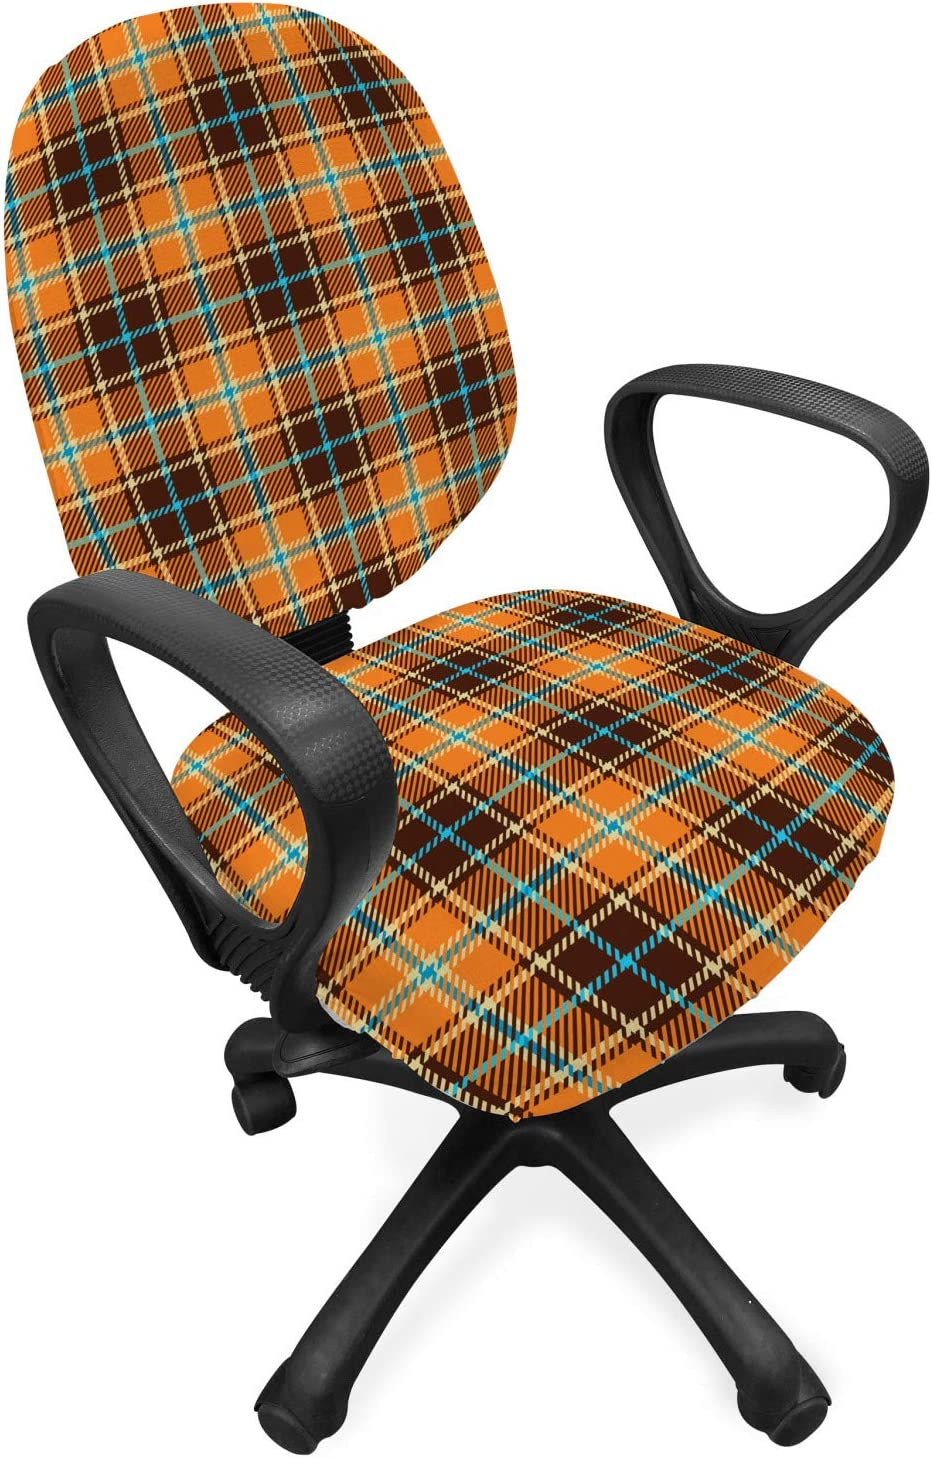 Ambesonne Brown Plaid Office Chair Slipcover, Tartan Style Streaks in Earth Tones, Protective Stretch Decorative Fabric Cover, Orange Brown Sky Blue